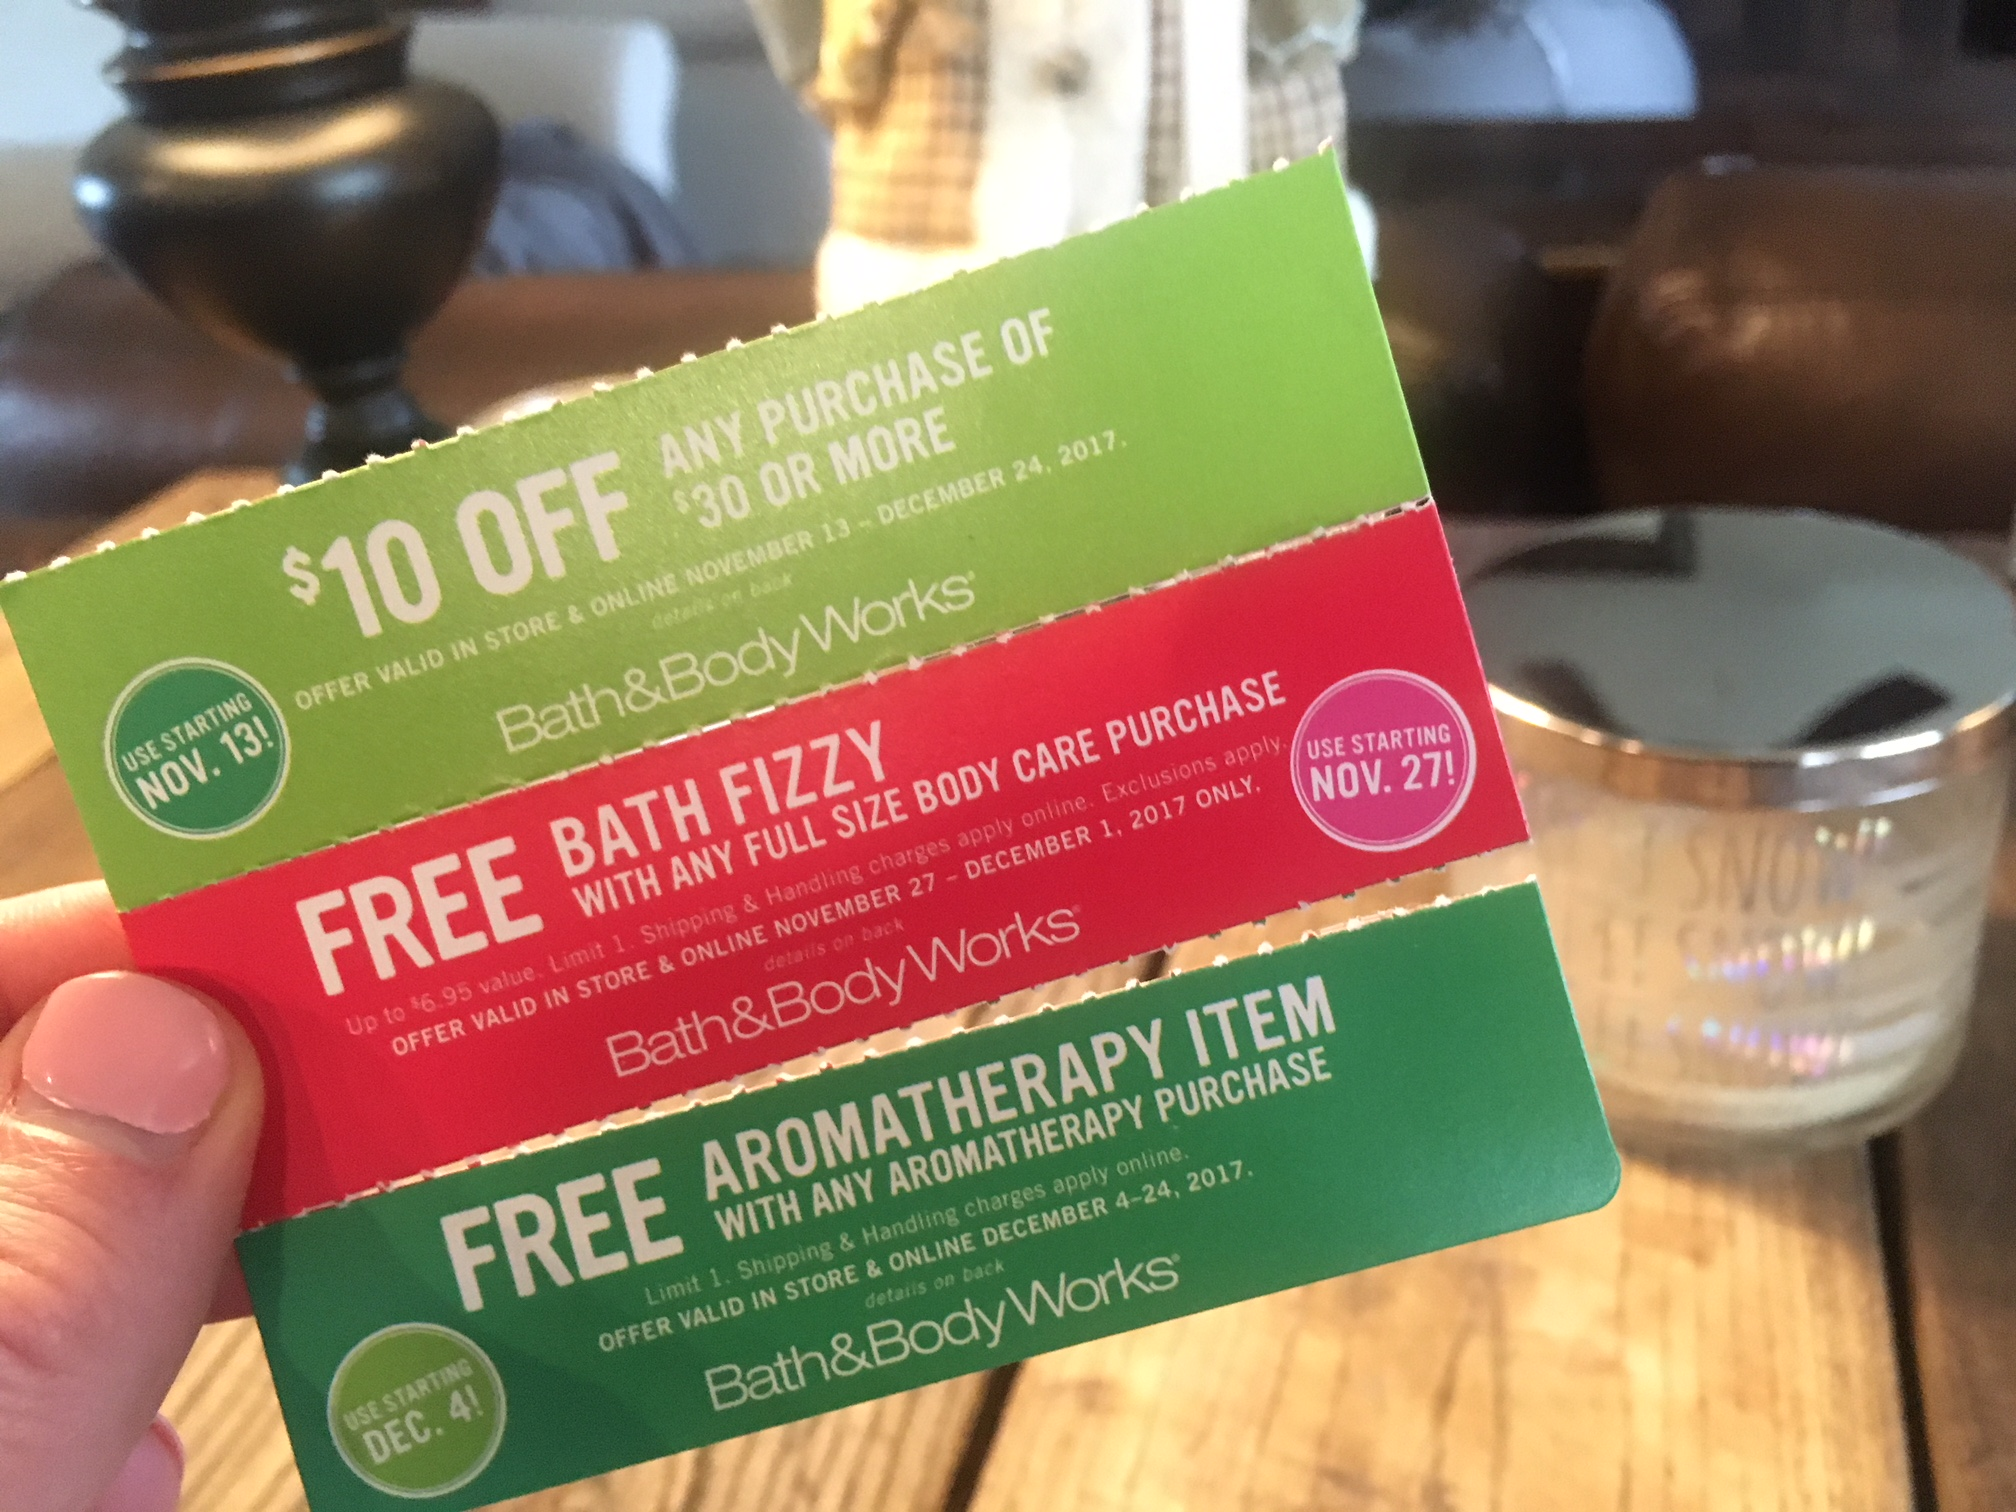 16 secrets for saving big at bath & body works – coupons